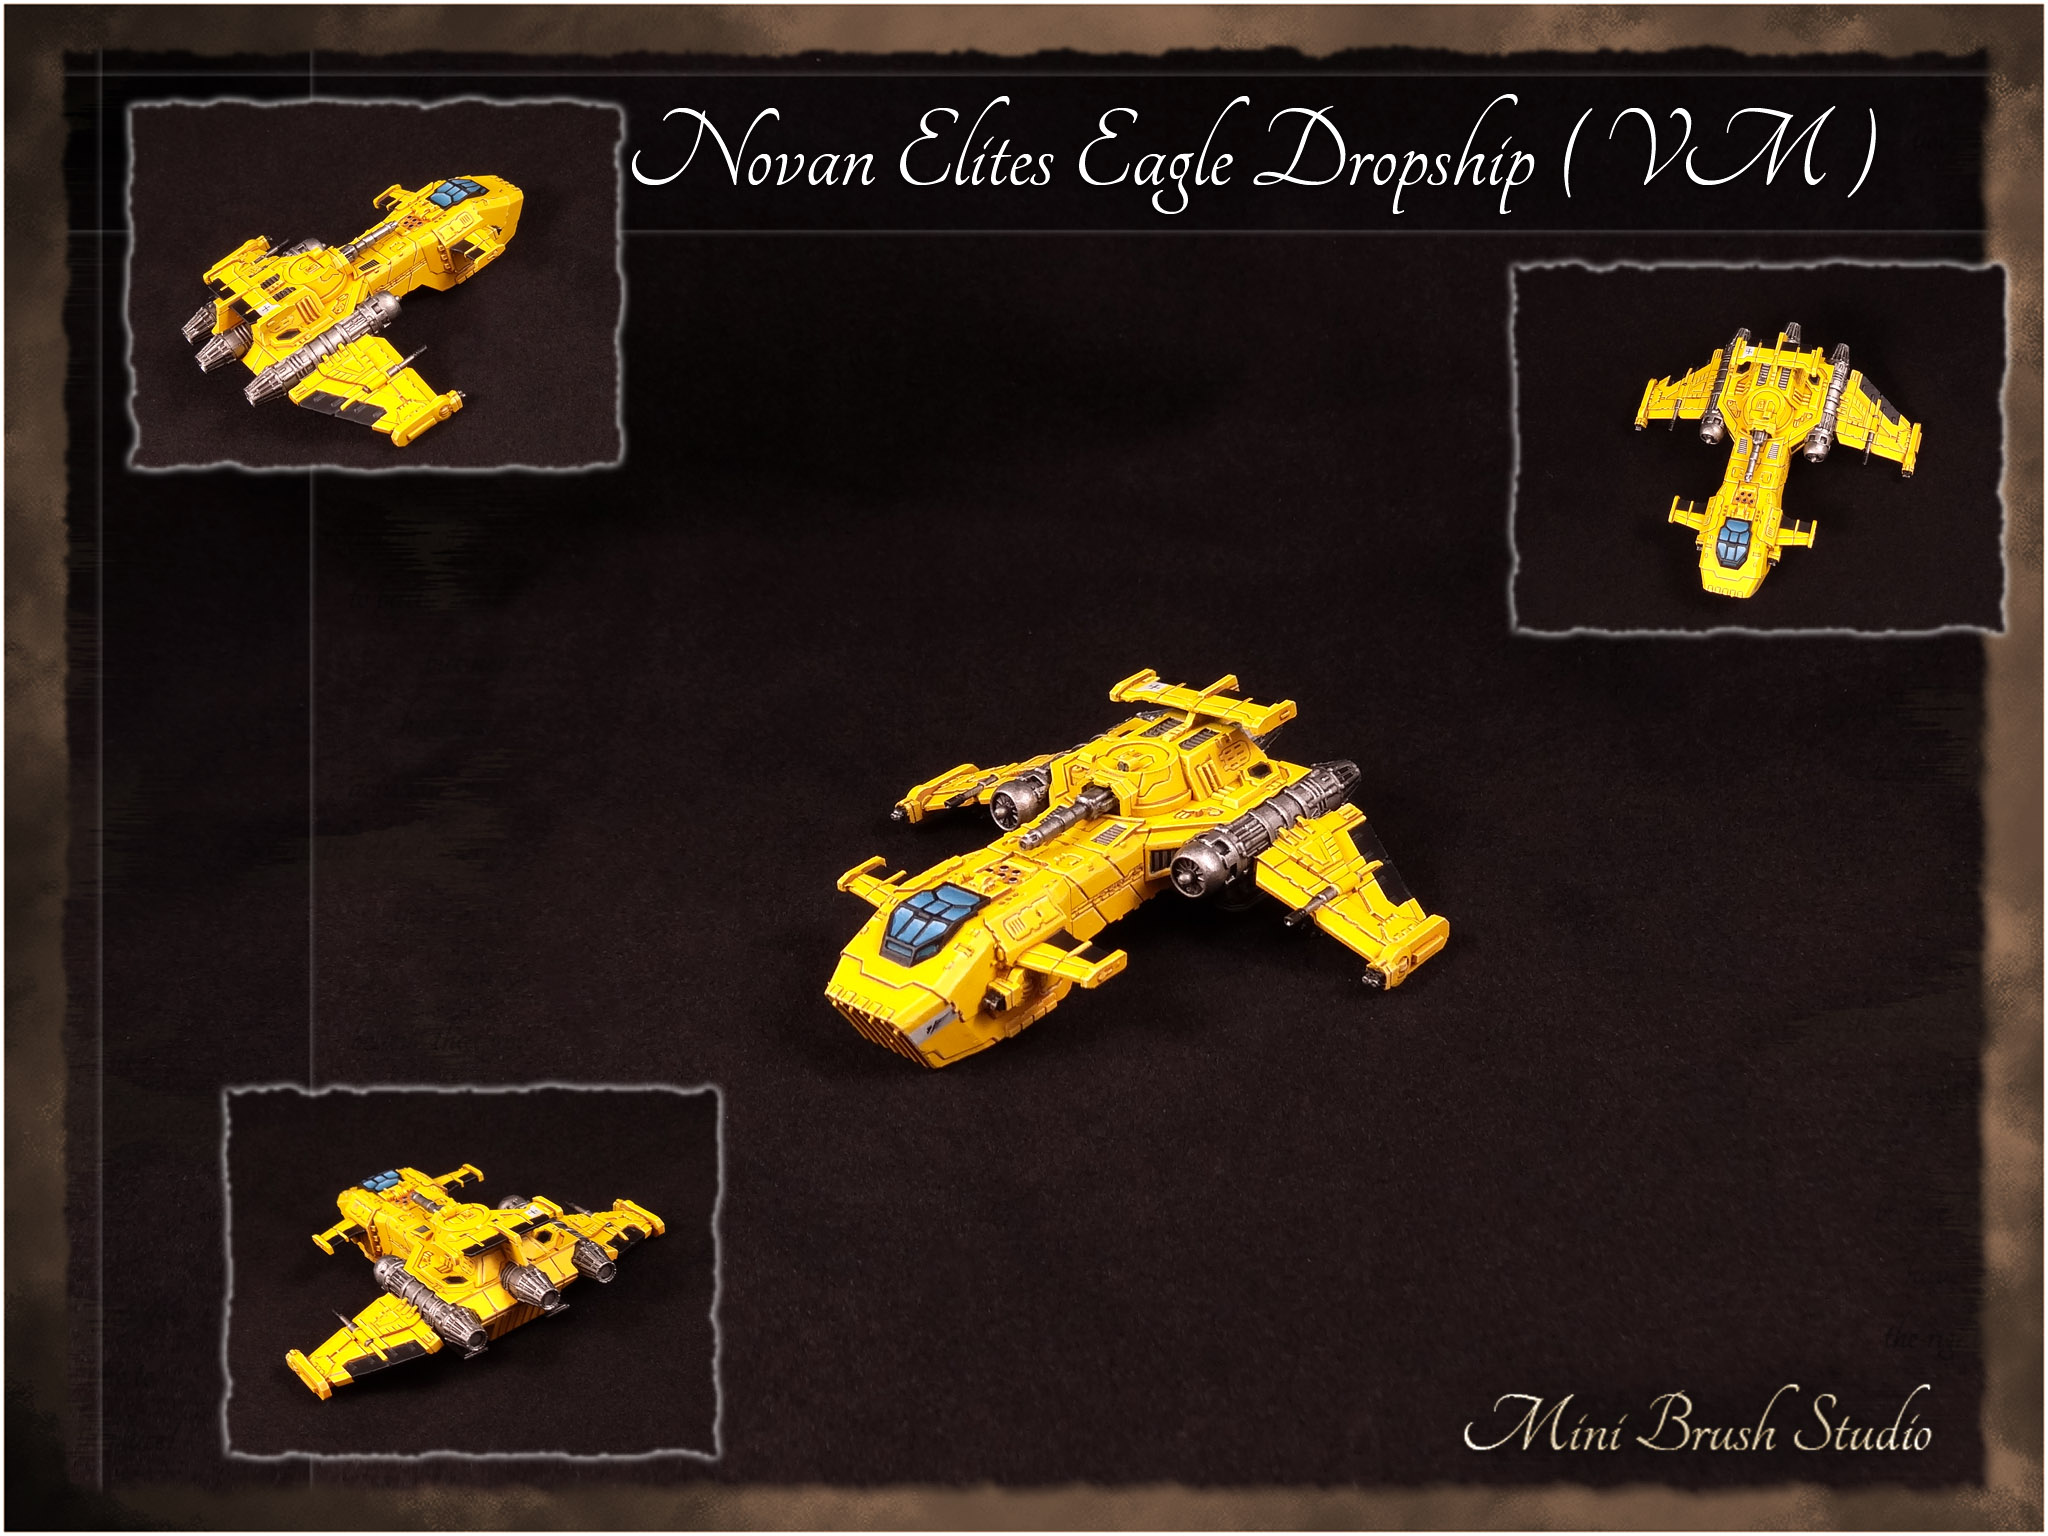 Novan Elites Eagle Dropship 1 v7.00.jpg